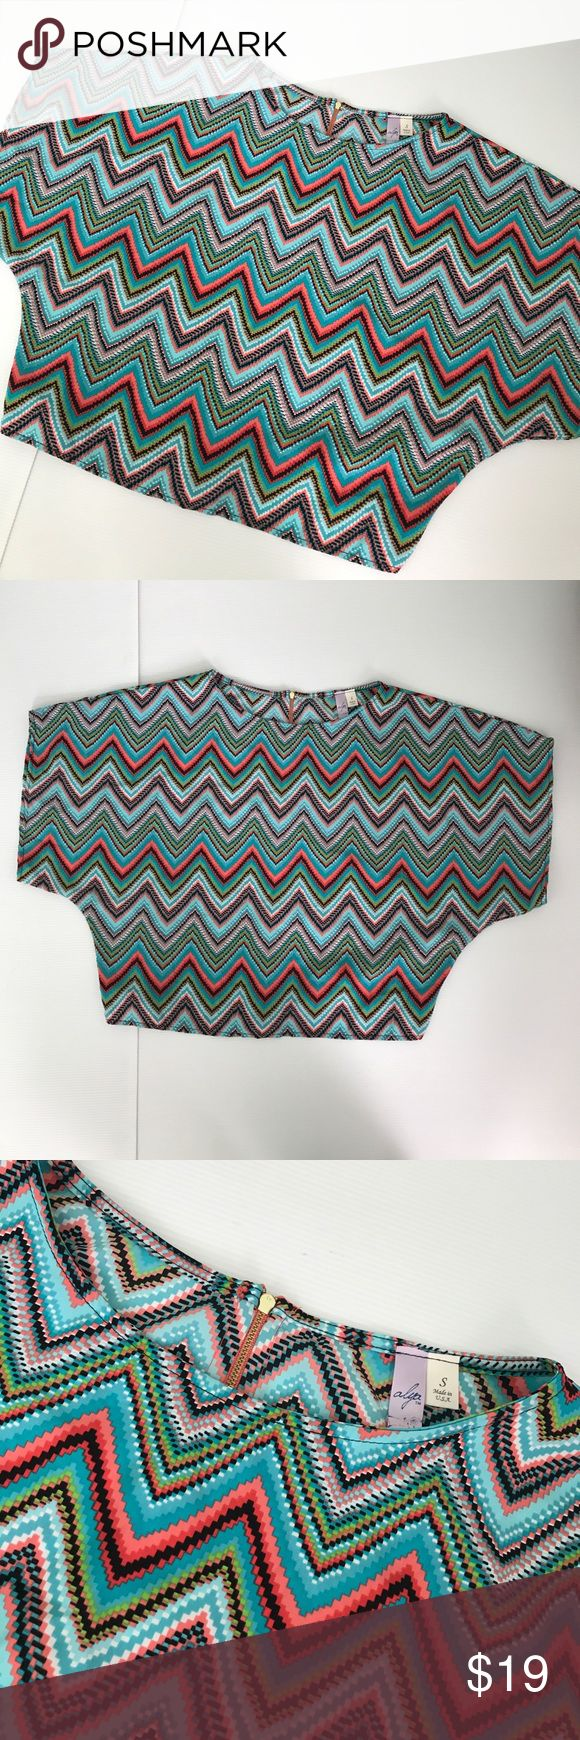 Alya batwing chevron print top size S small Alya brand chevron top size small but is loose fitting. Beautiful zipper back Batwing sleeve  Orange teal turquoise salmon coral black green Alya Tops Blouses